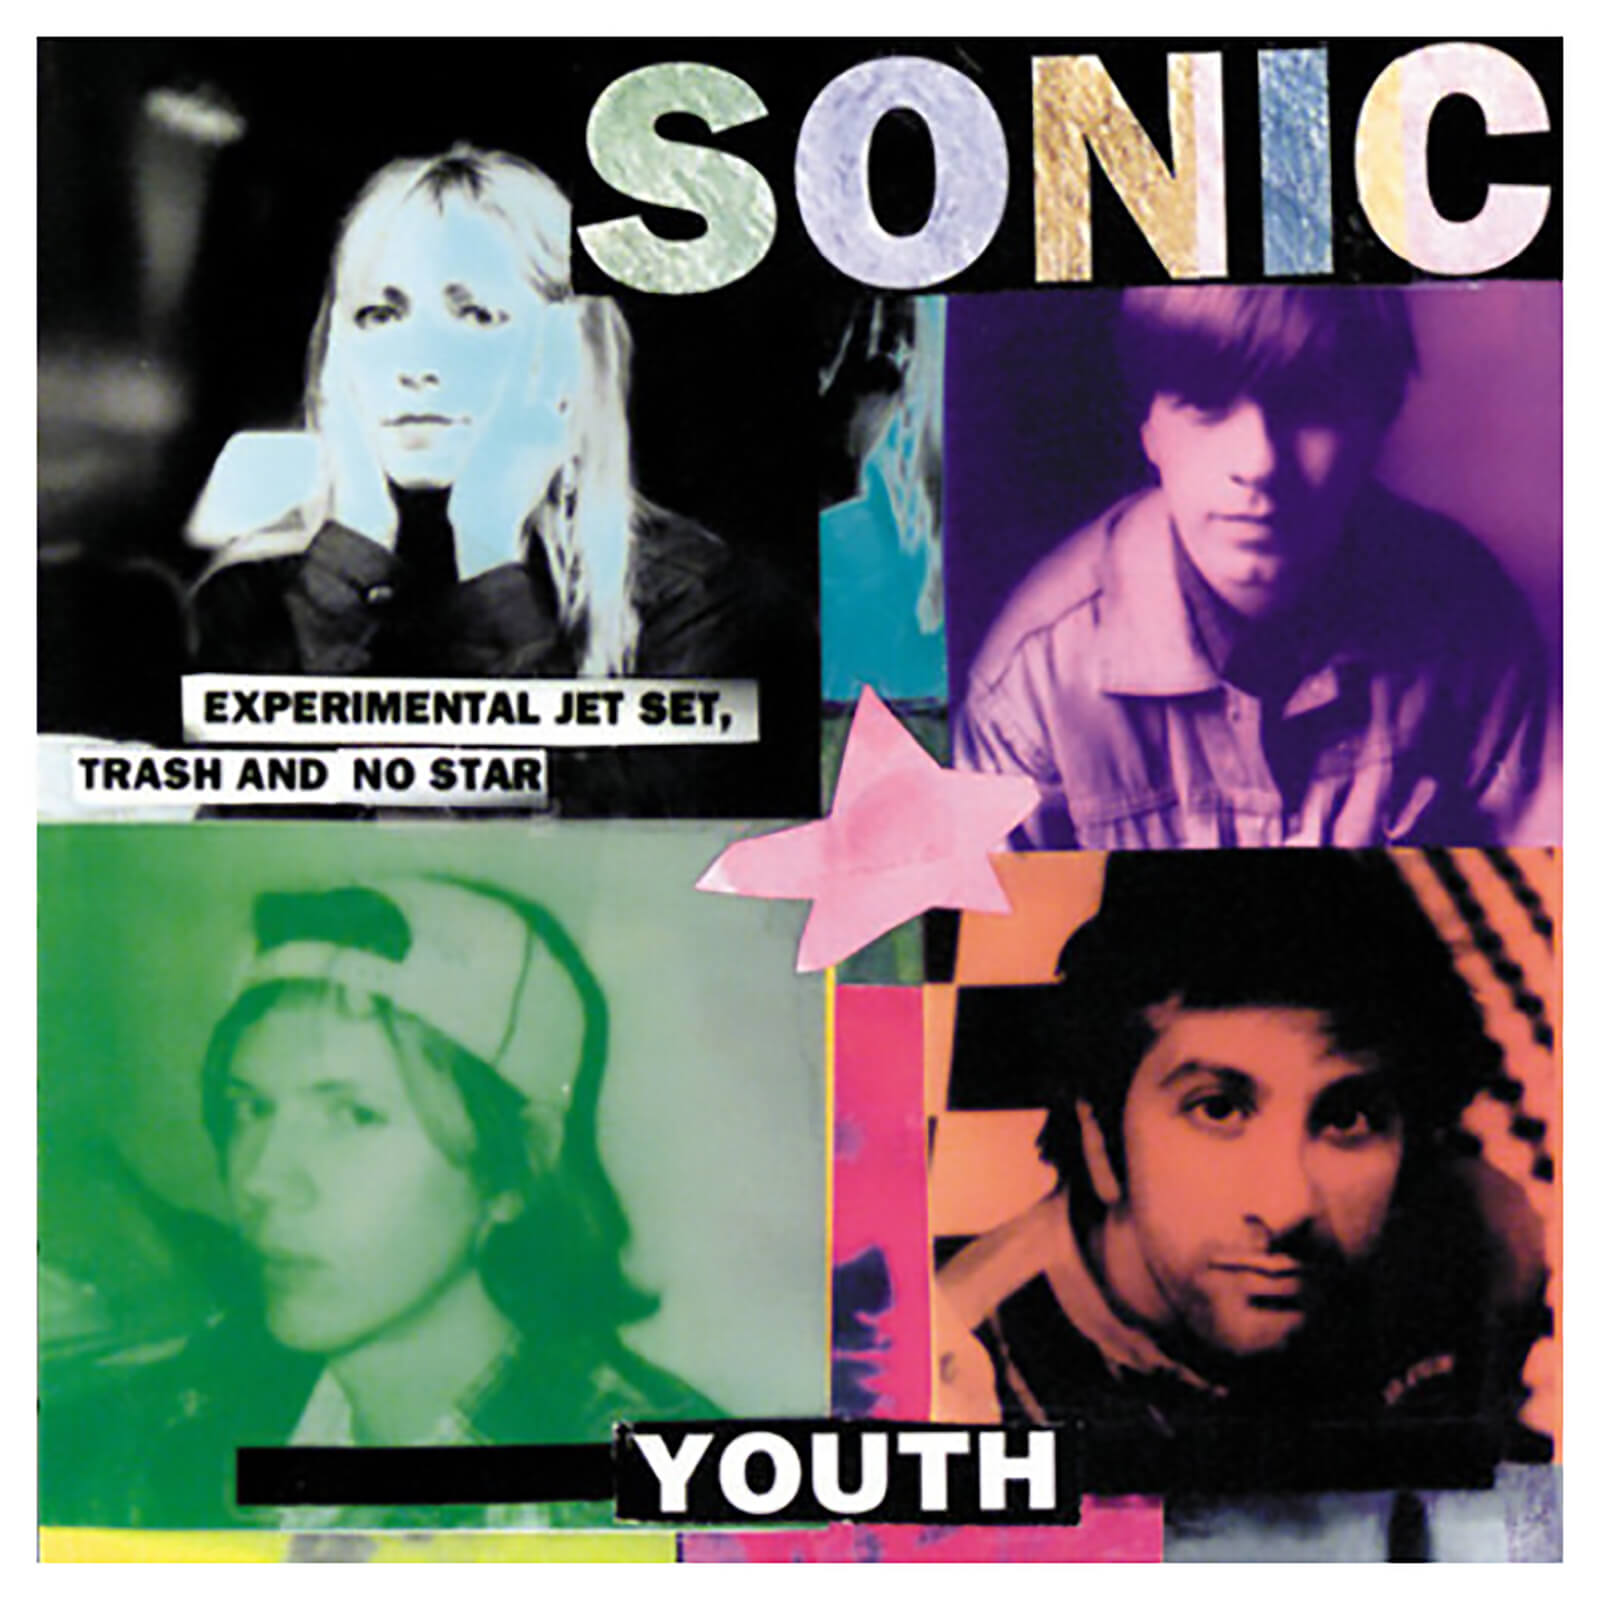 Sonic Youth - Experimental Jet Set Trash & No Star - Vinyl